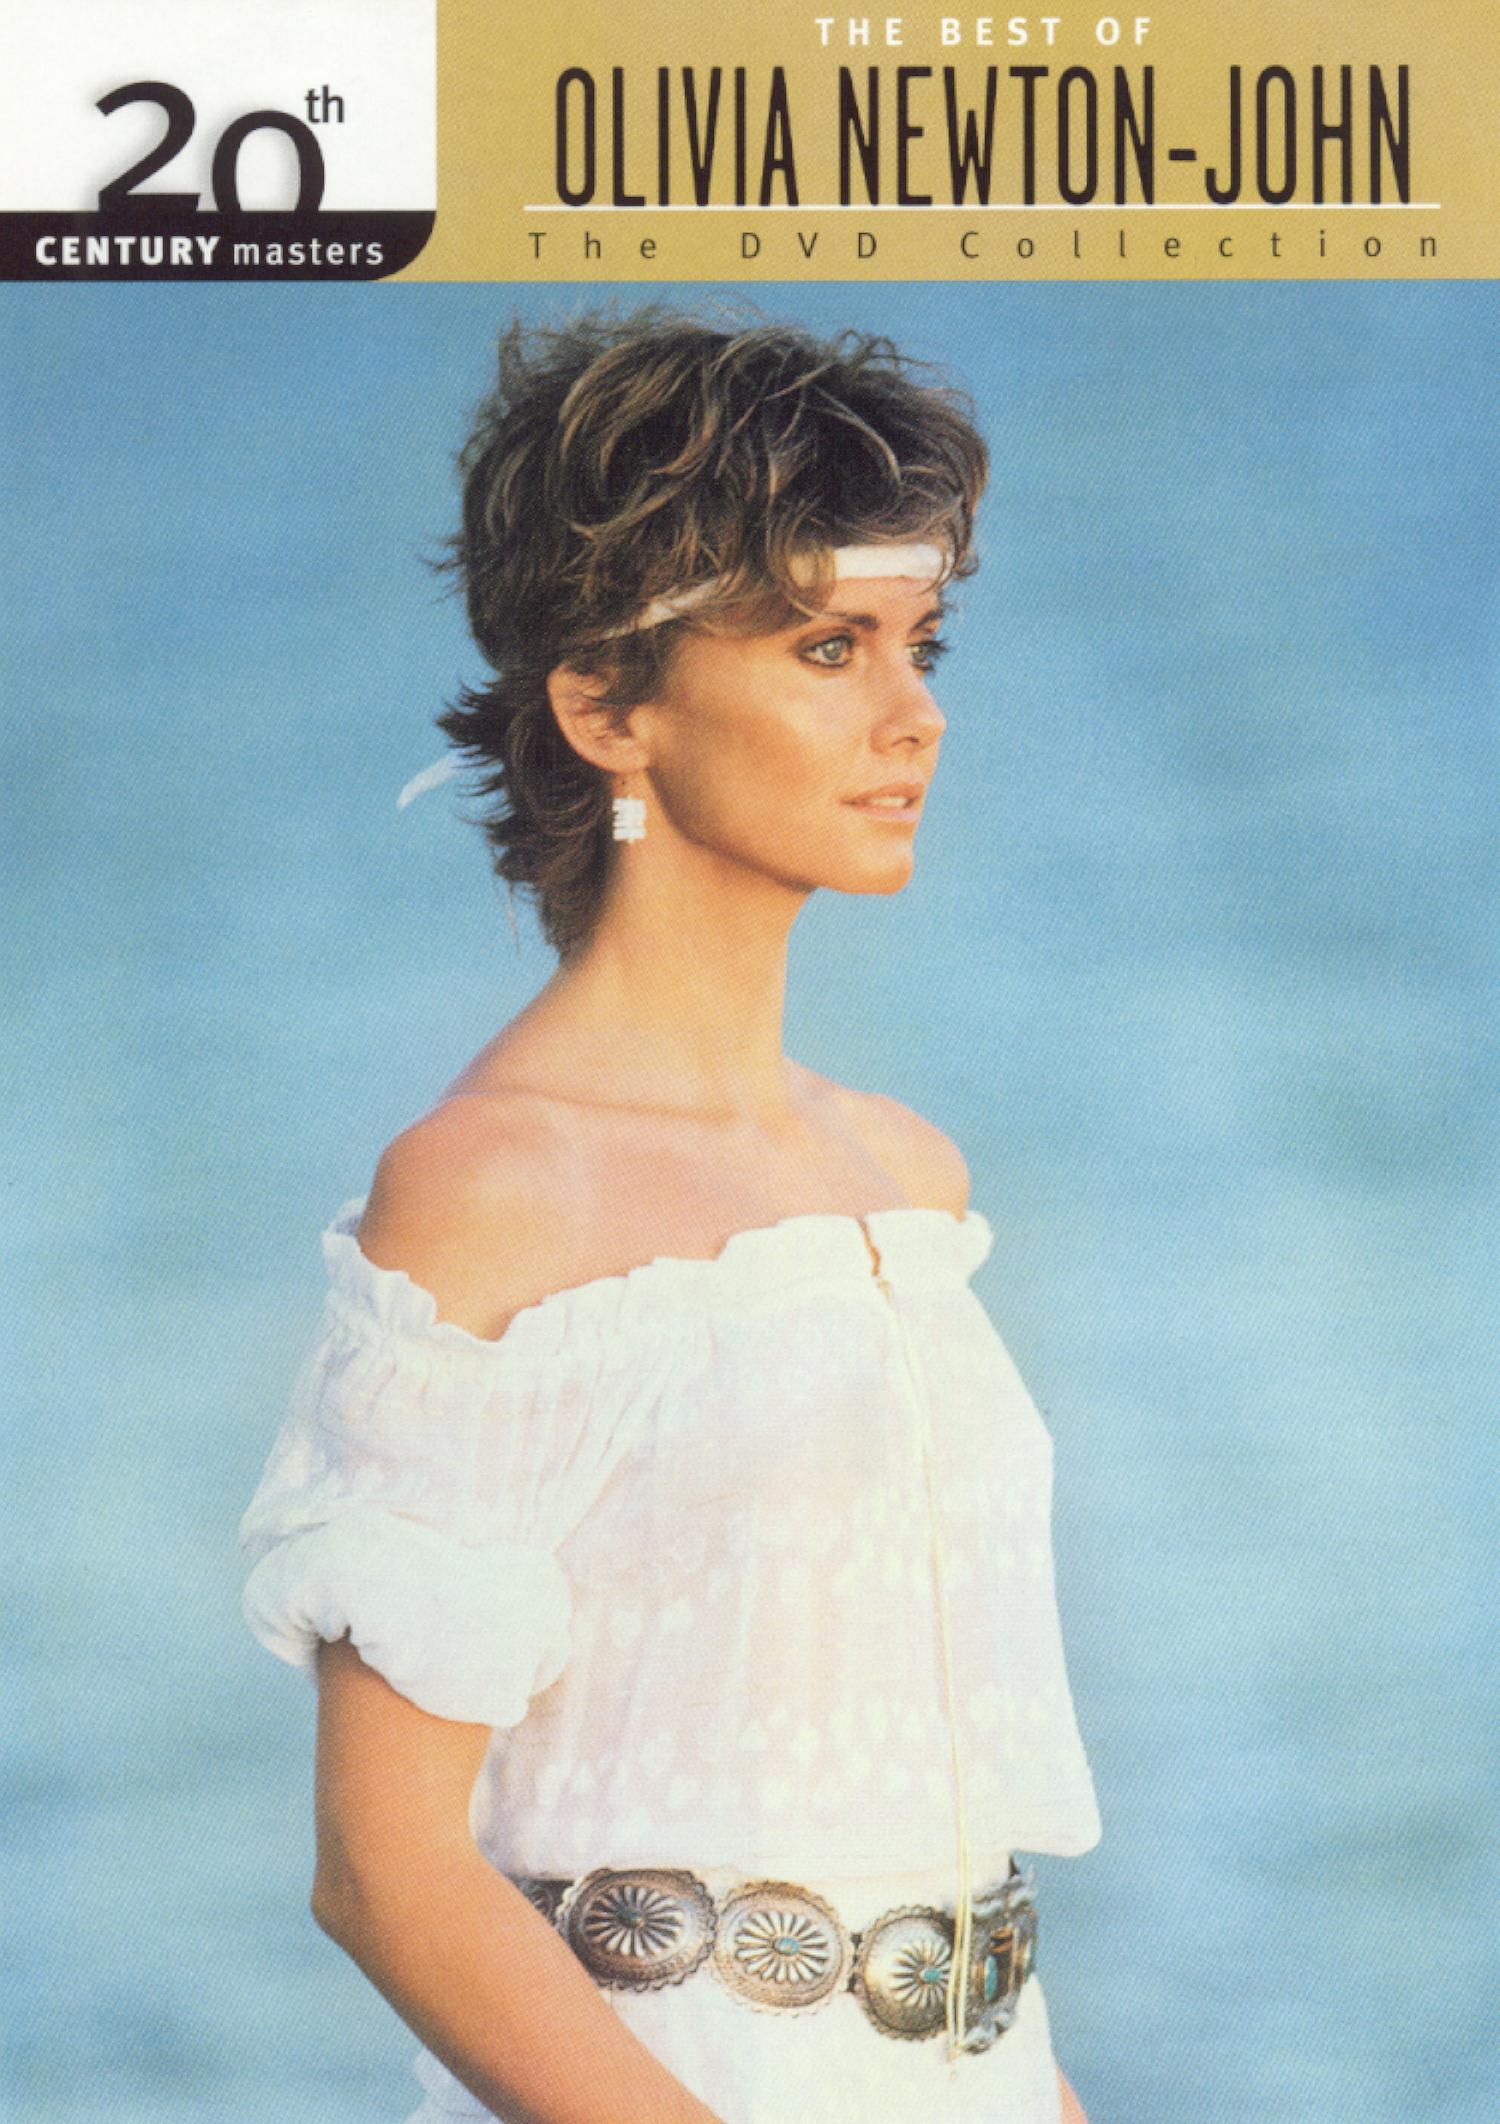 20th Century Masters: The Best of Olivia Newton-John